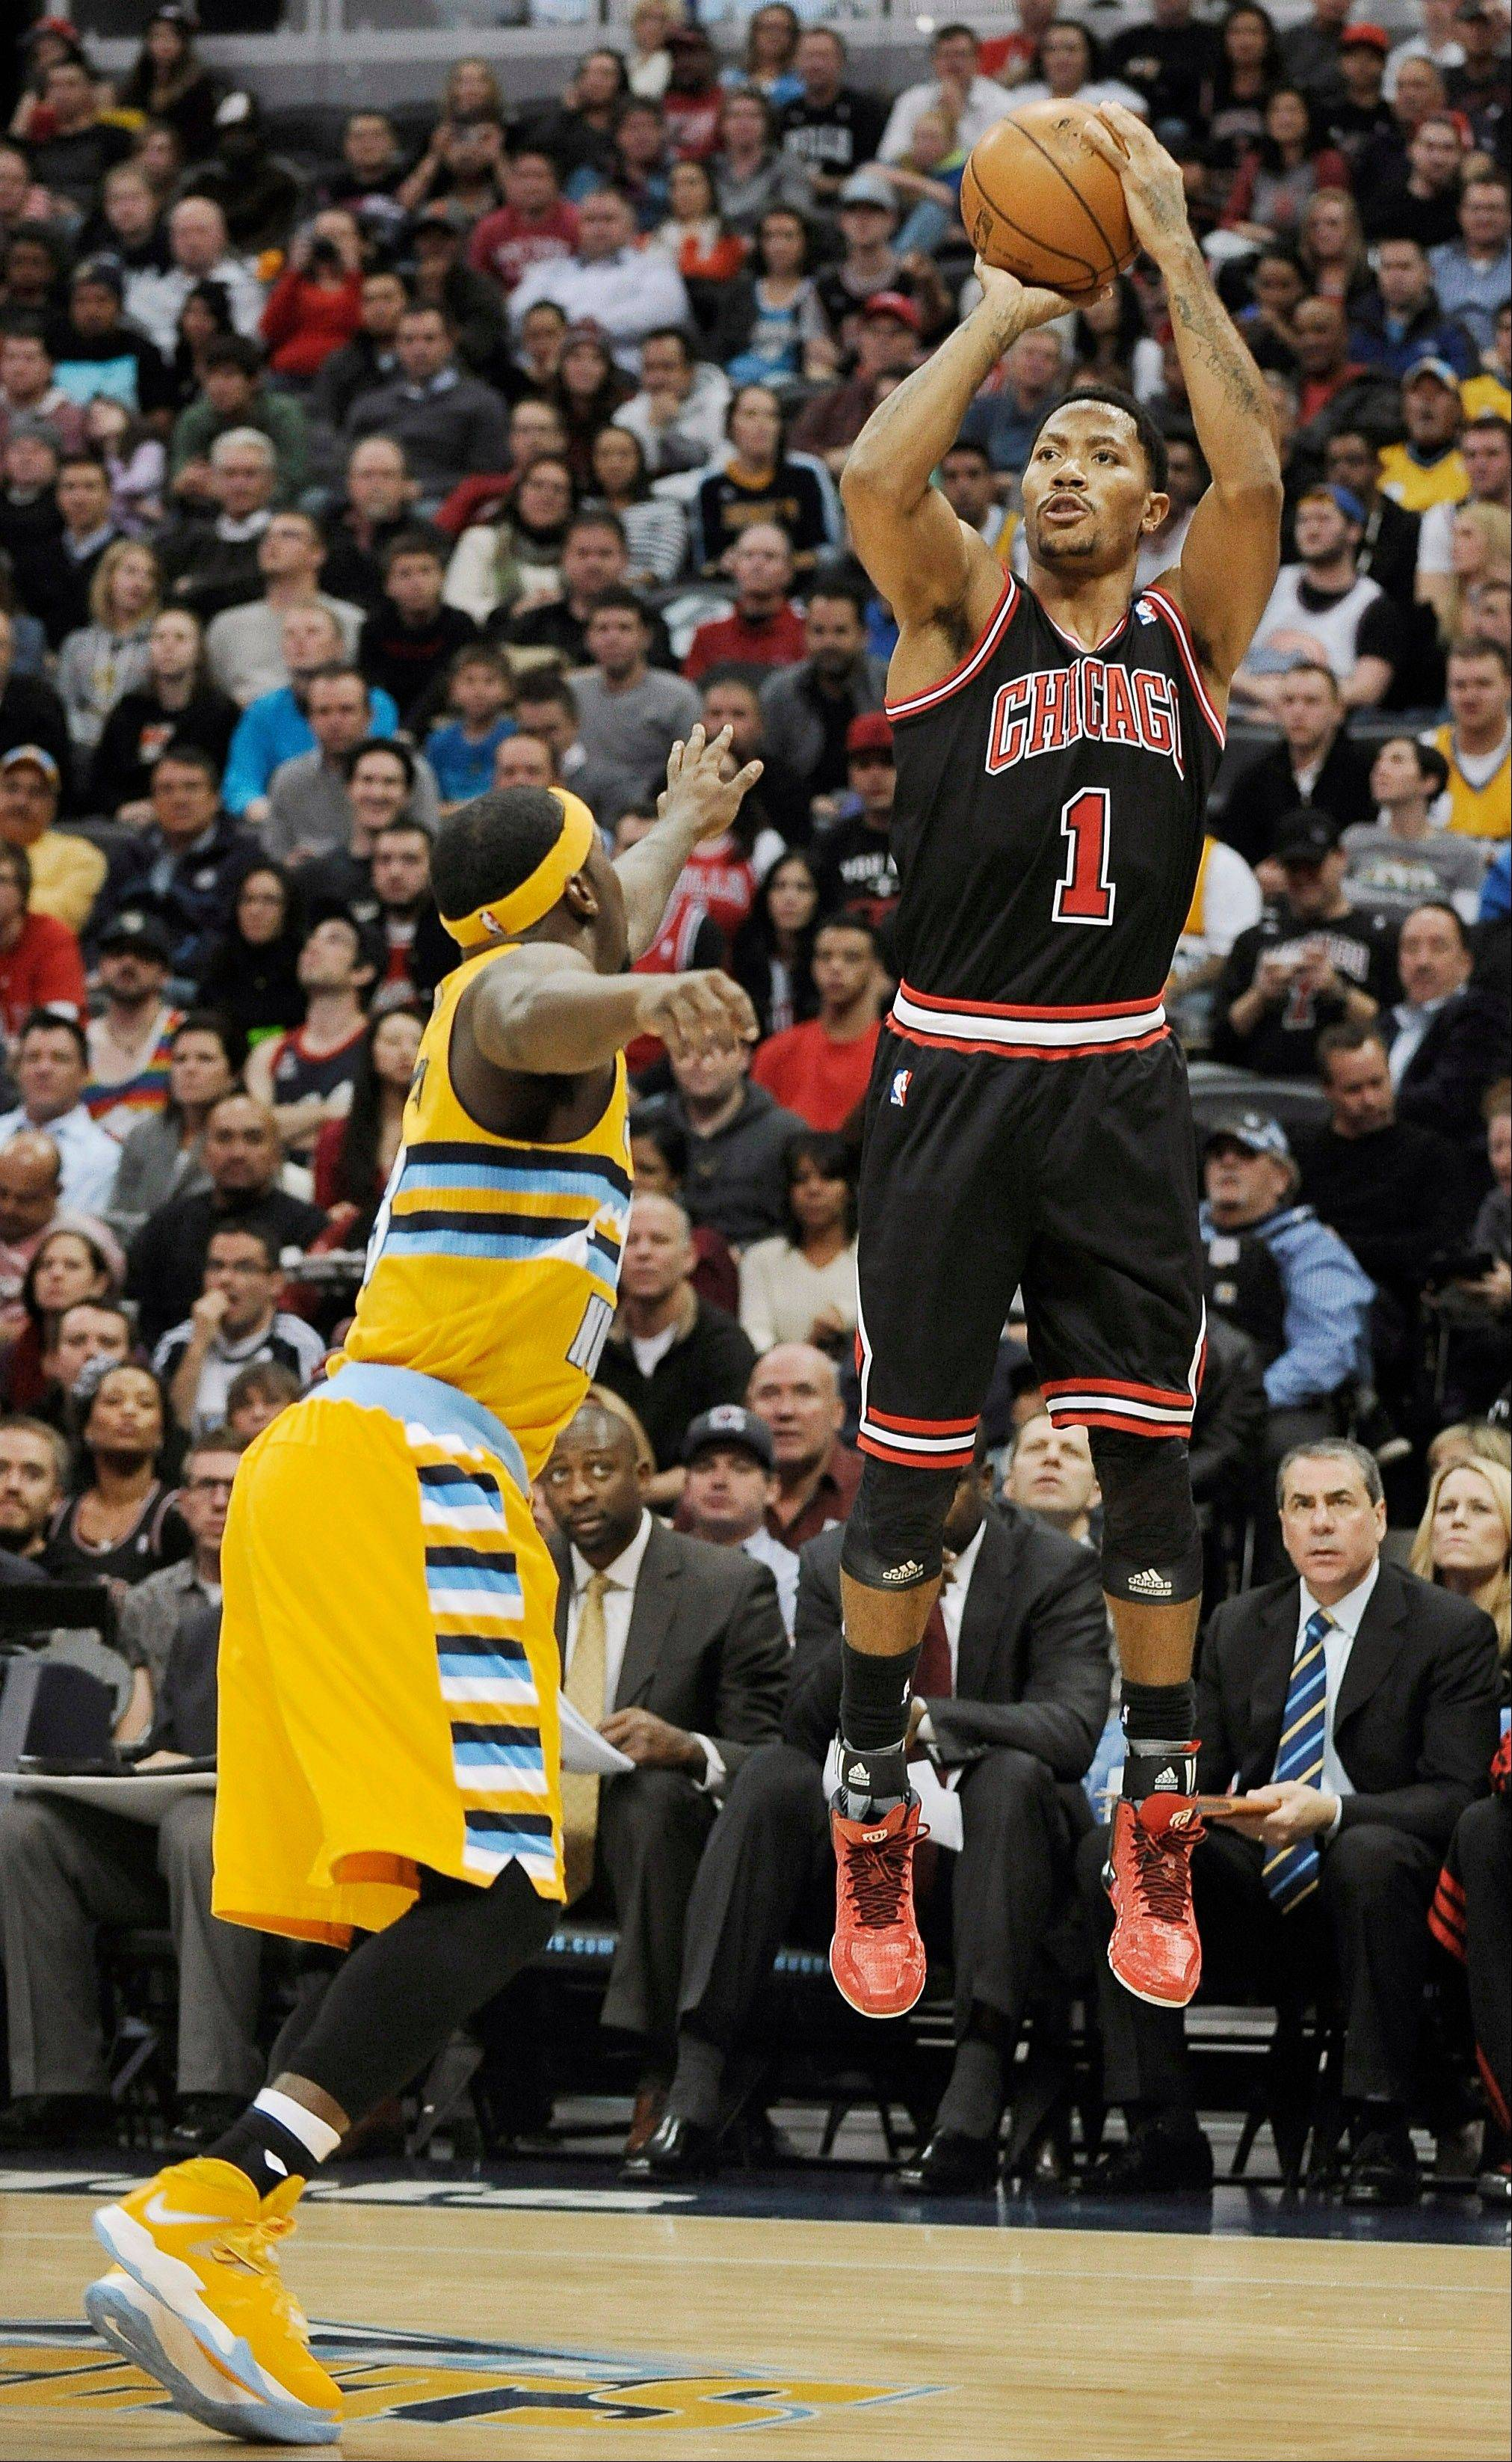 Bulls guard Derrick Rose should now understand that the next game is promised to no athlete.